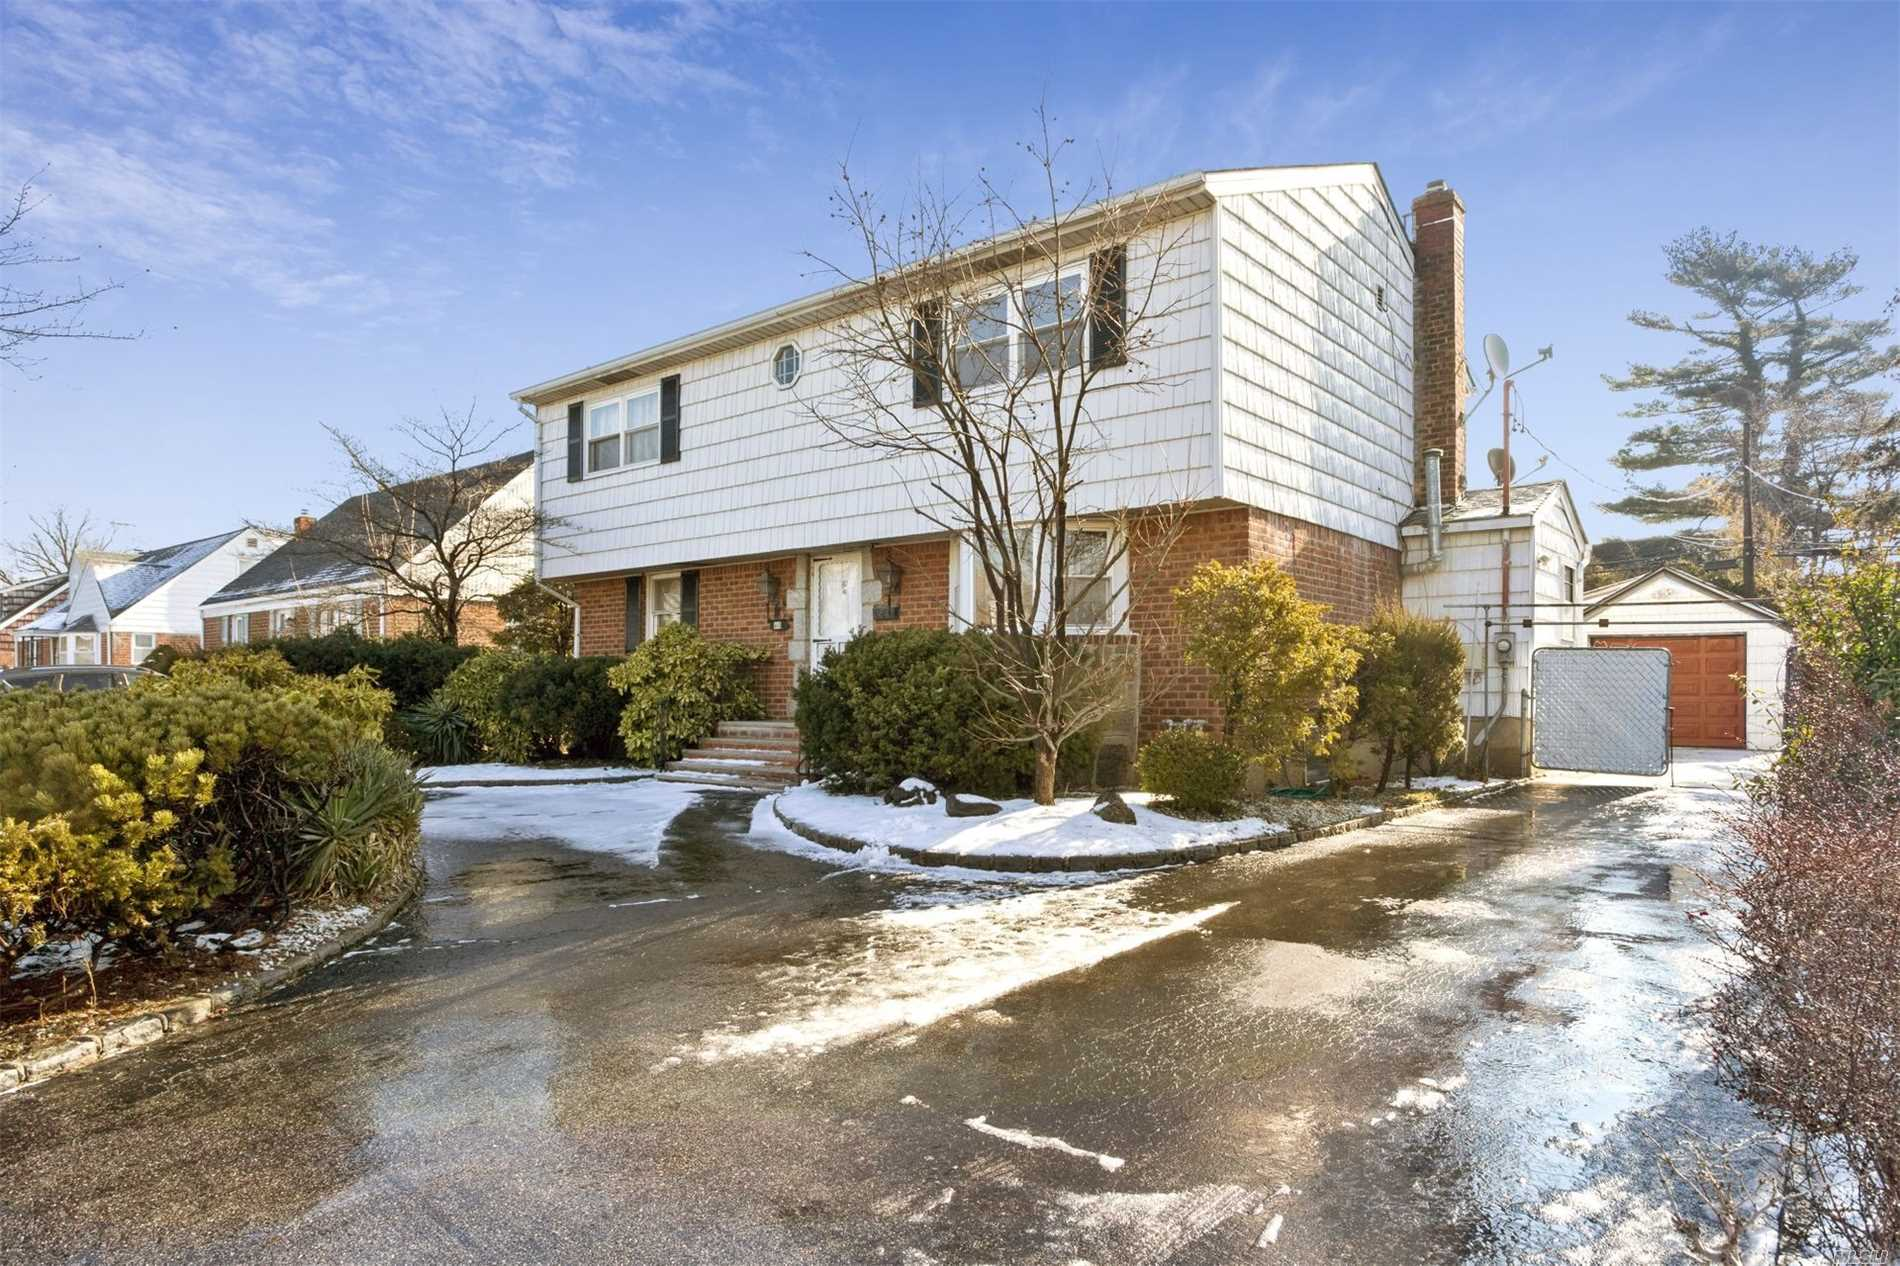 This 2040 Sf Expanded Cape Cod Boasts All Large Rooms, Living Room,  Large Eat-In-Kitchen,  Den/Bedroom, A Huge Master Bedroom With A Dressing Room, Large Bedrooms, Two Updated Full Baths, New Hardwood Floors, Newly Painted, Updated Gas Boiler And Water Heater, Central Air, 60X100 Private Fenced Yard, 1.5 Car Detached Garage Wide Circular Driveway, Gas Heat , Close To Shopping Centers, Public Transportation, Parks And Parkways. Must See!!!